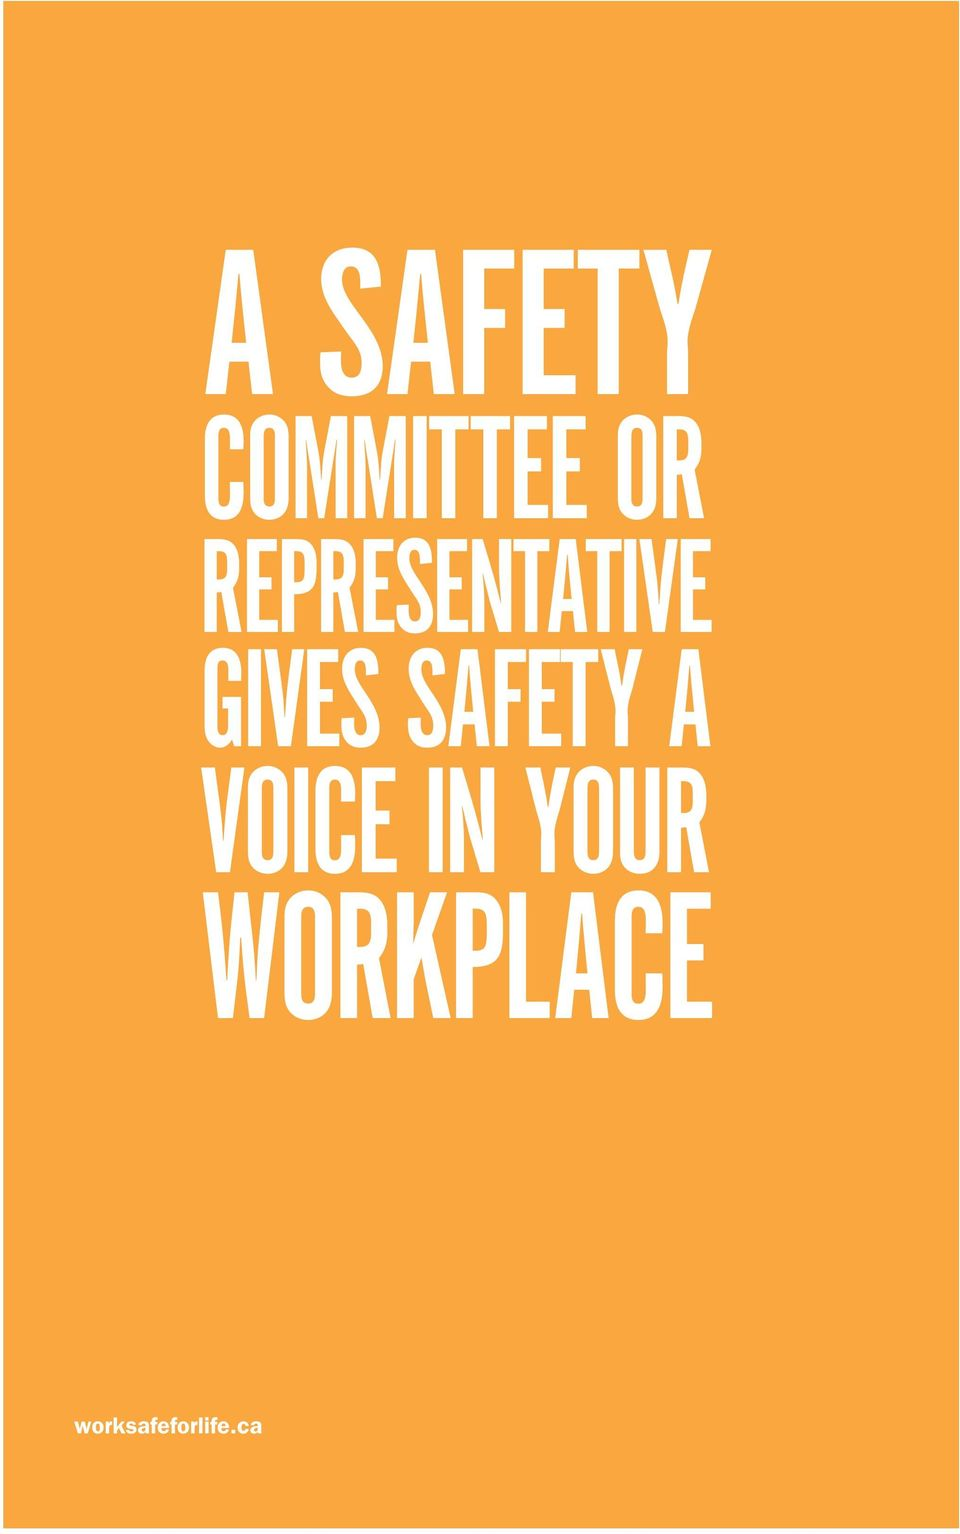 SAFETY A VOICE IN YOUR